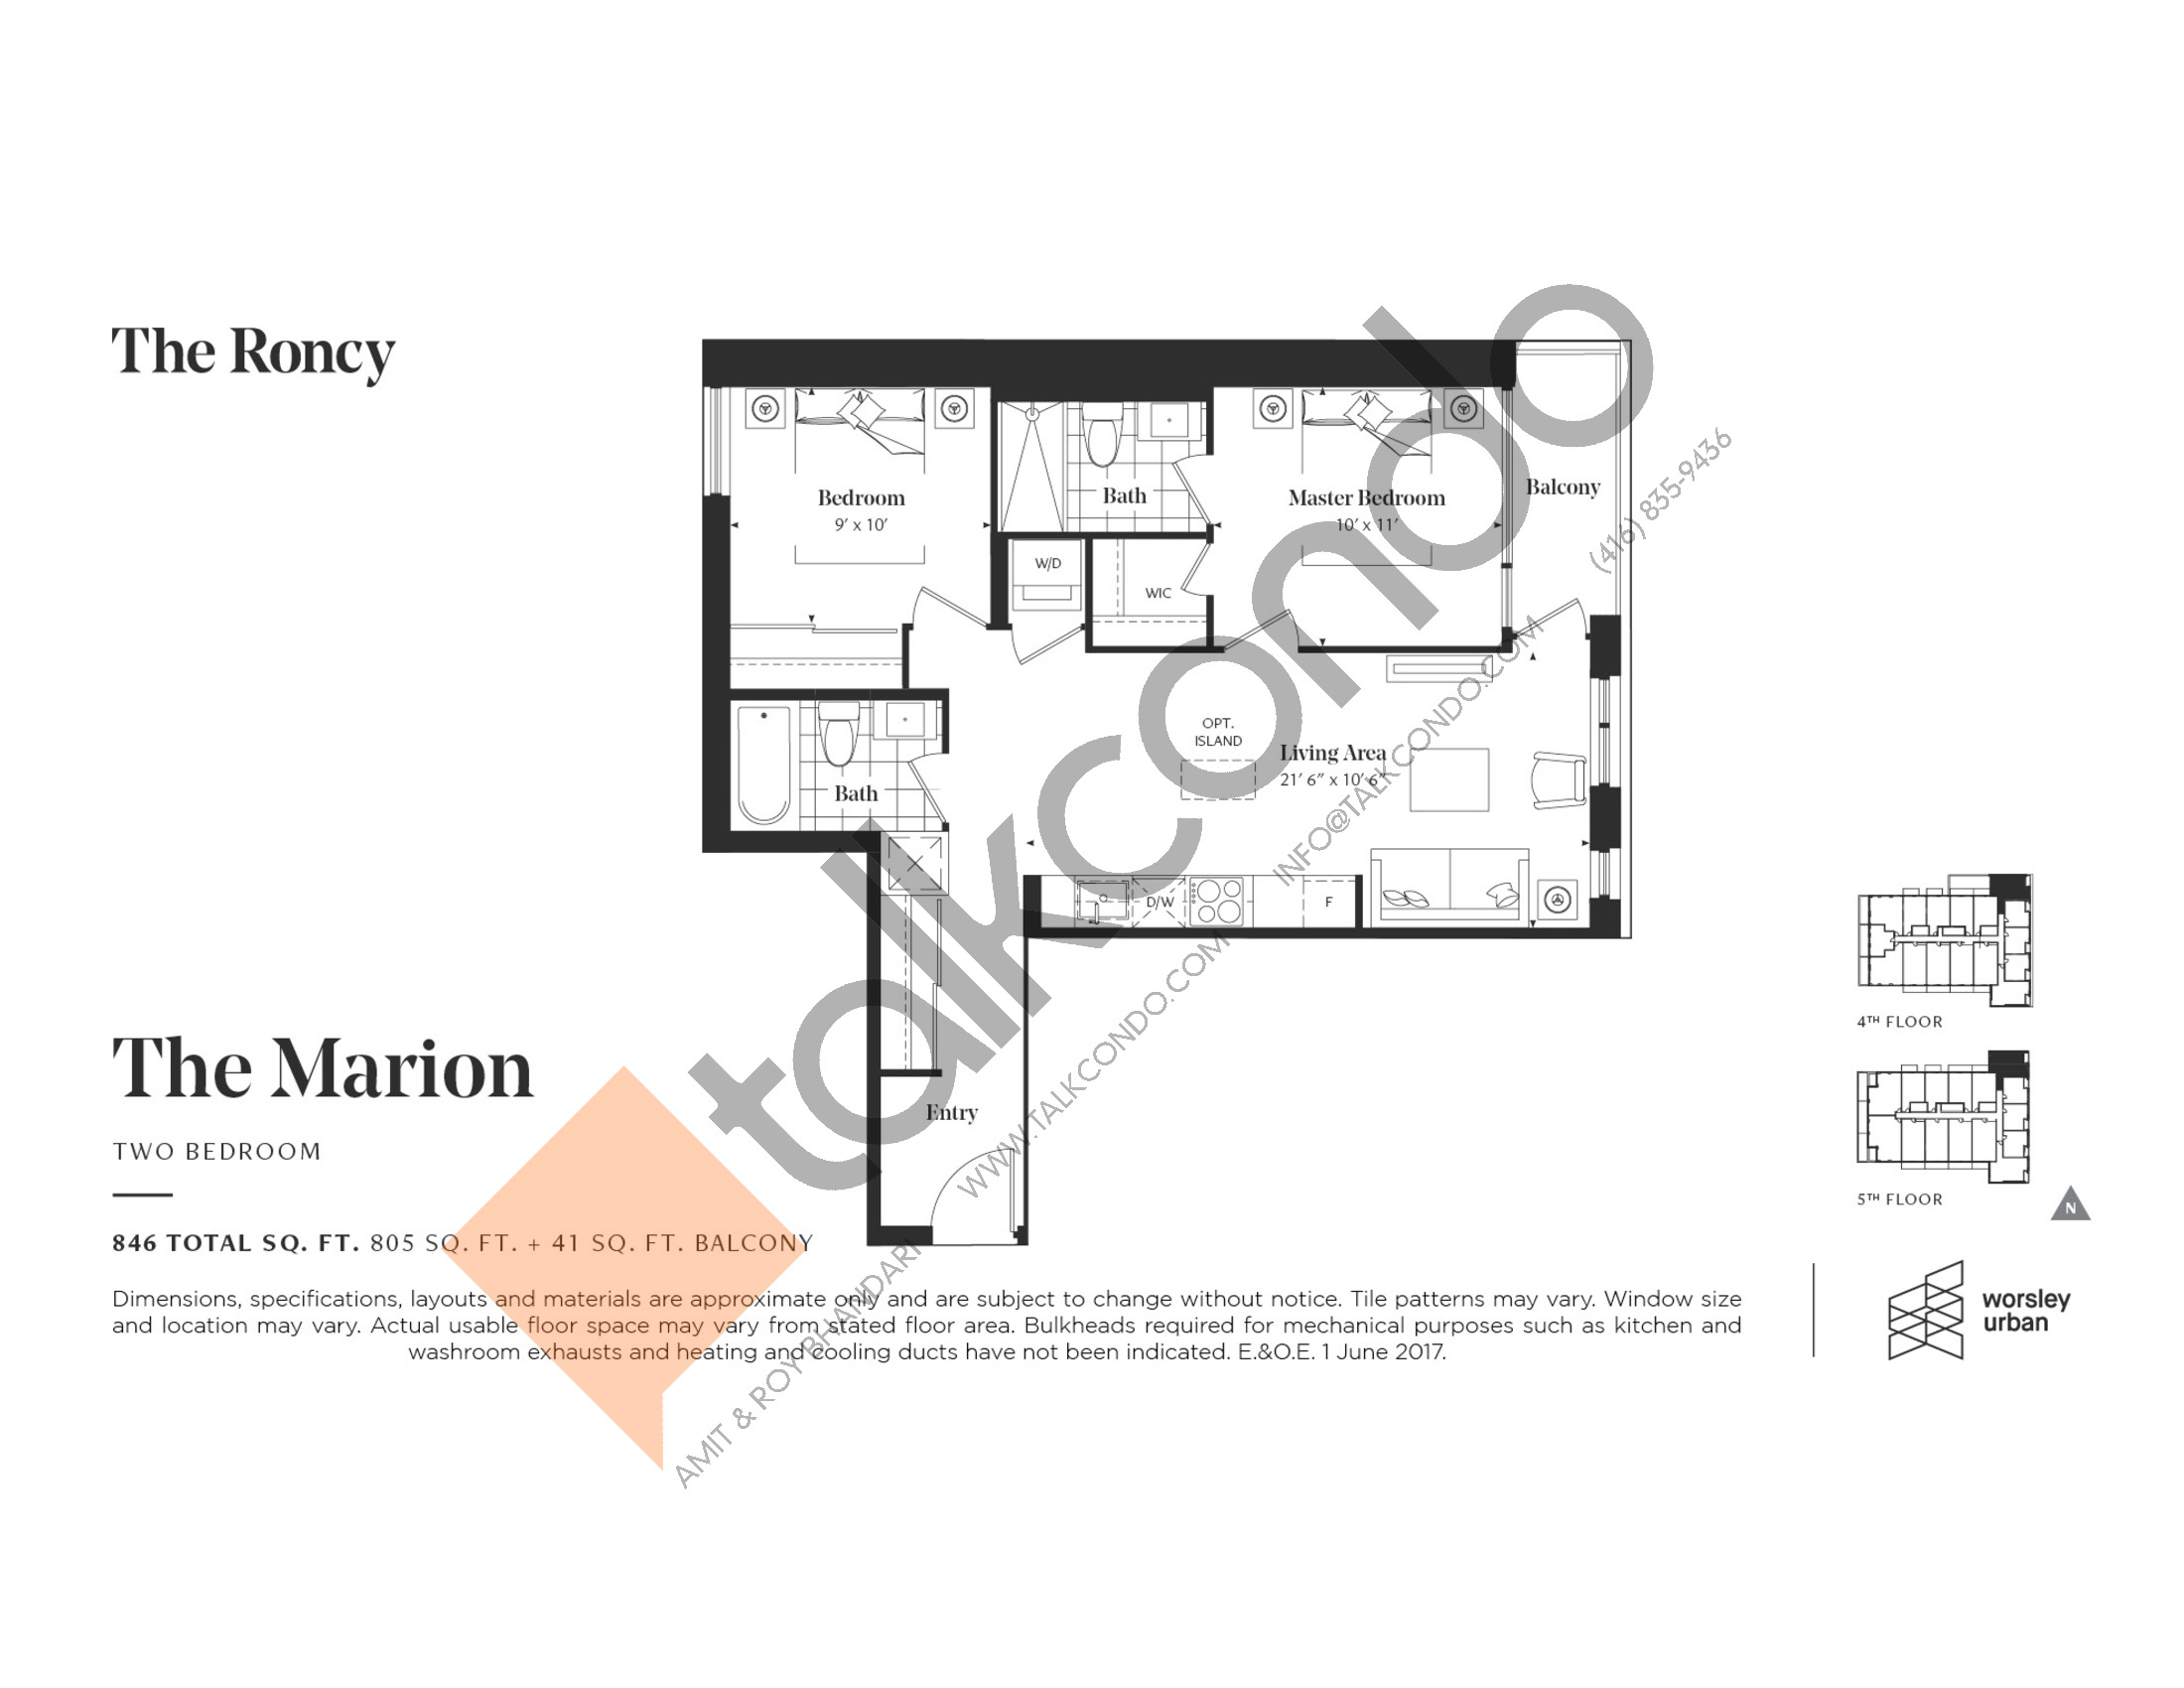 The Marion Floor Plan at The Roncy Condos - 805 sq.ft